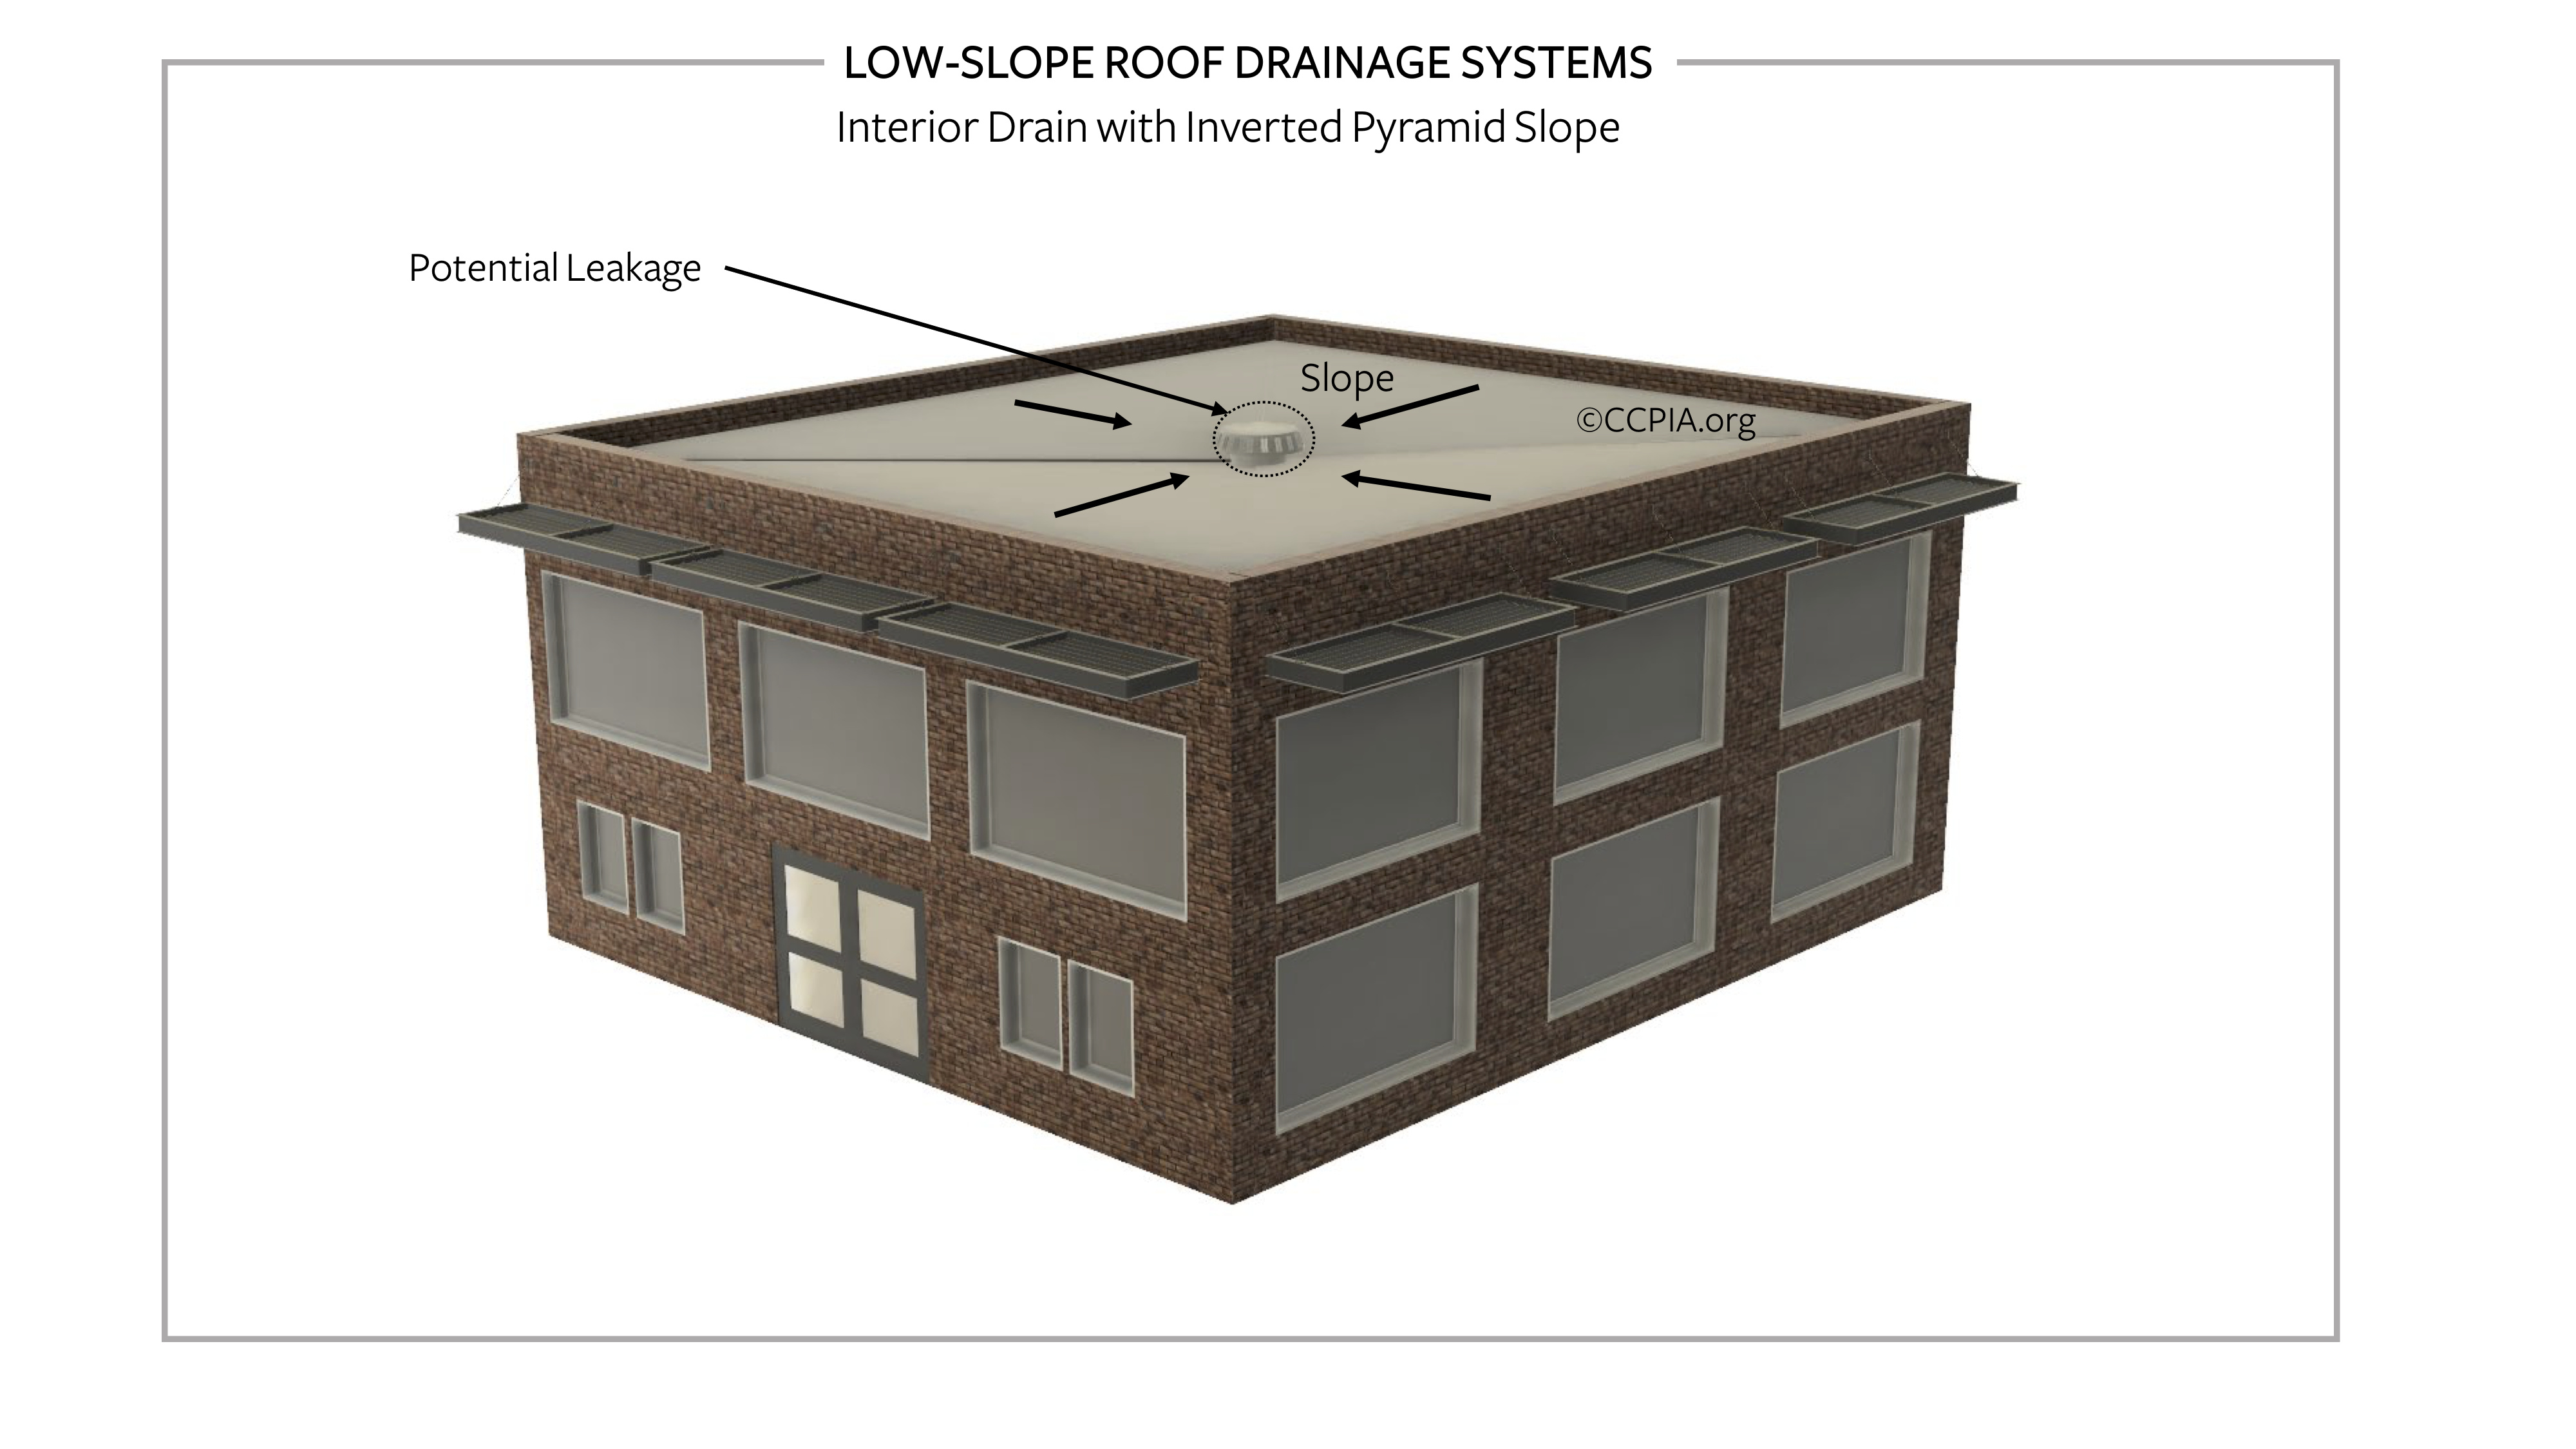 Low-slope roof drainage systems, interior drain with inverted pyramid slope.